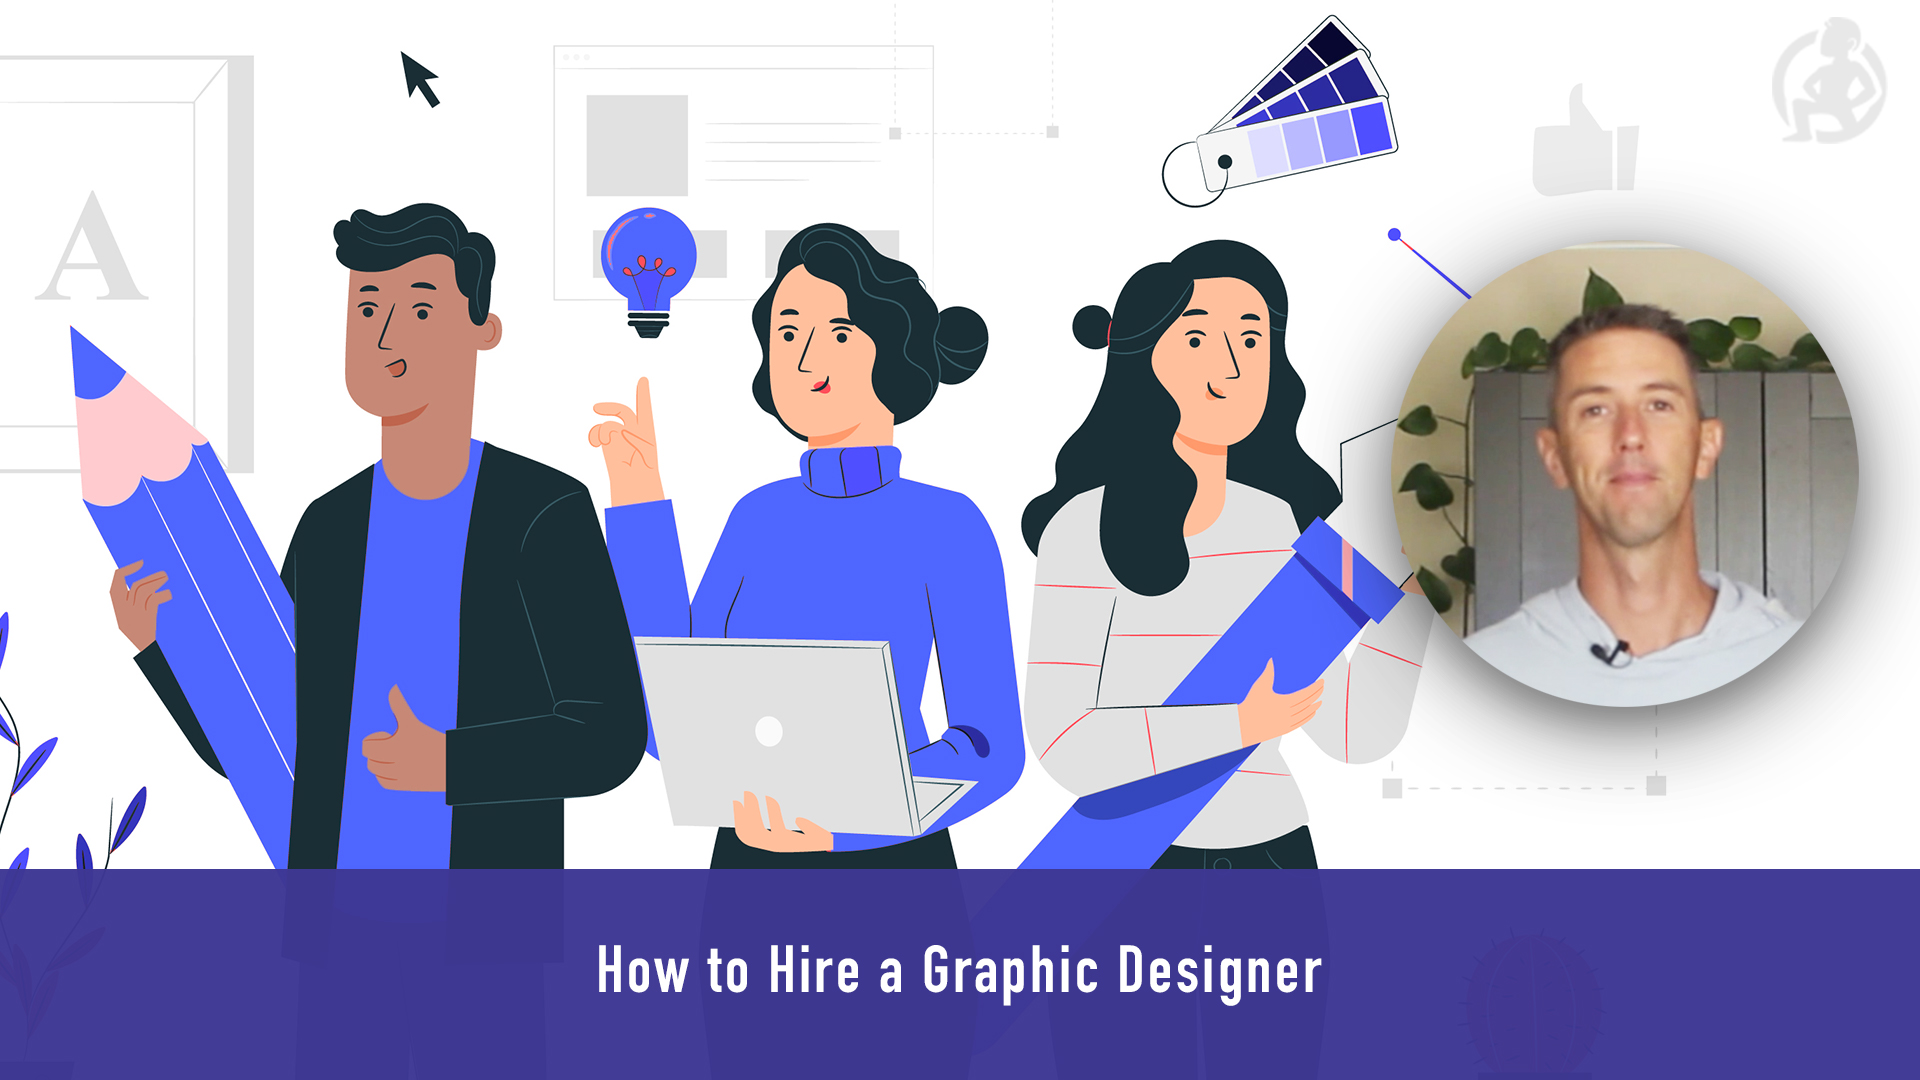 366 How to Hire a Graphic Designer